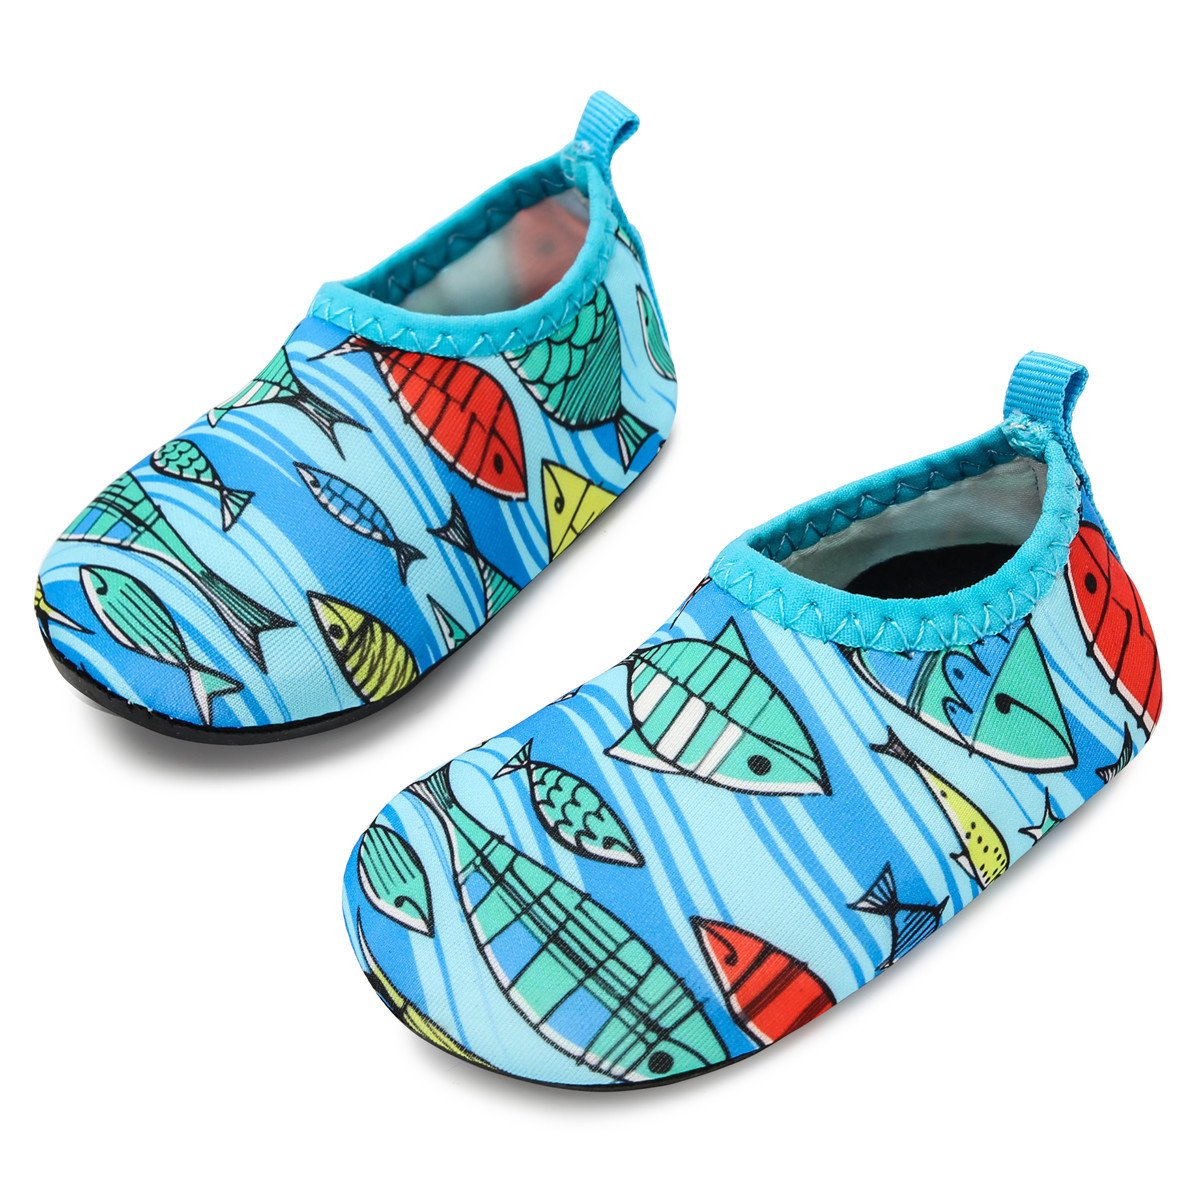 ac46a61afa31 Galleon - JIASUQI Babys Girls And Boys Comfort Walking Water Shoes For  Outdoor Swimming River Fish Light Blue 6-12 Months